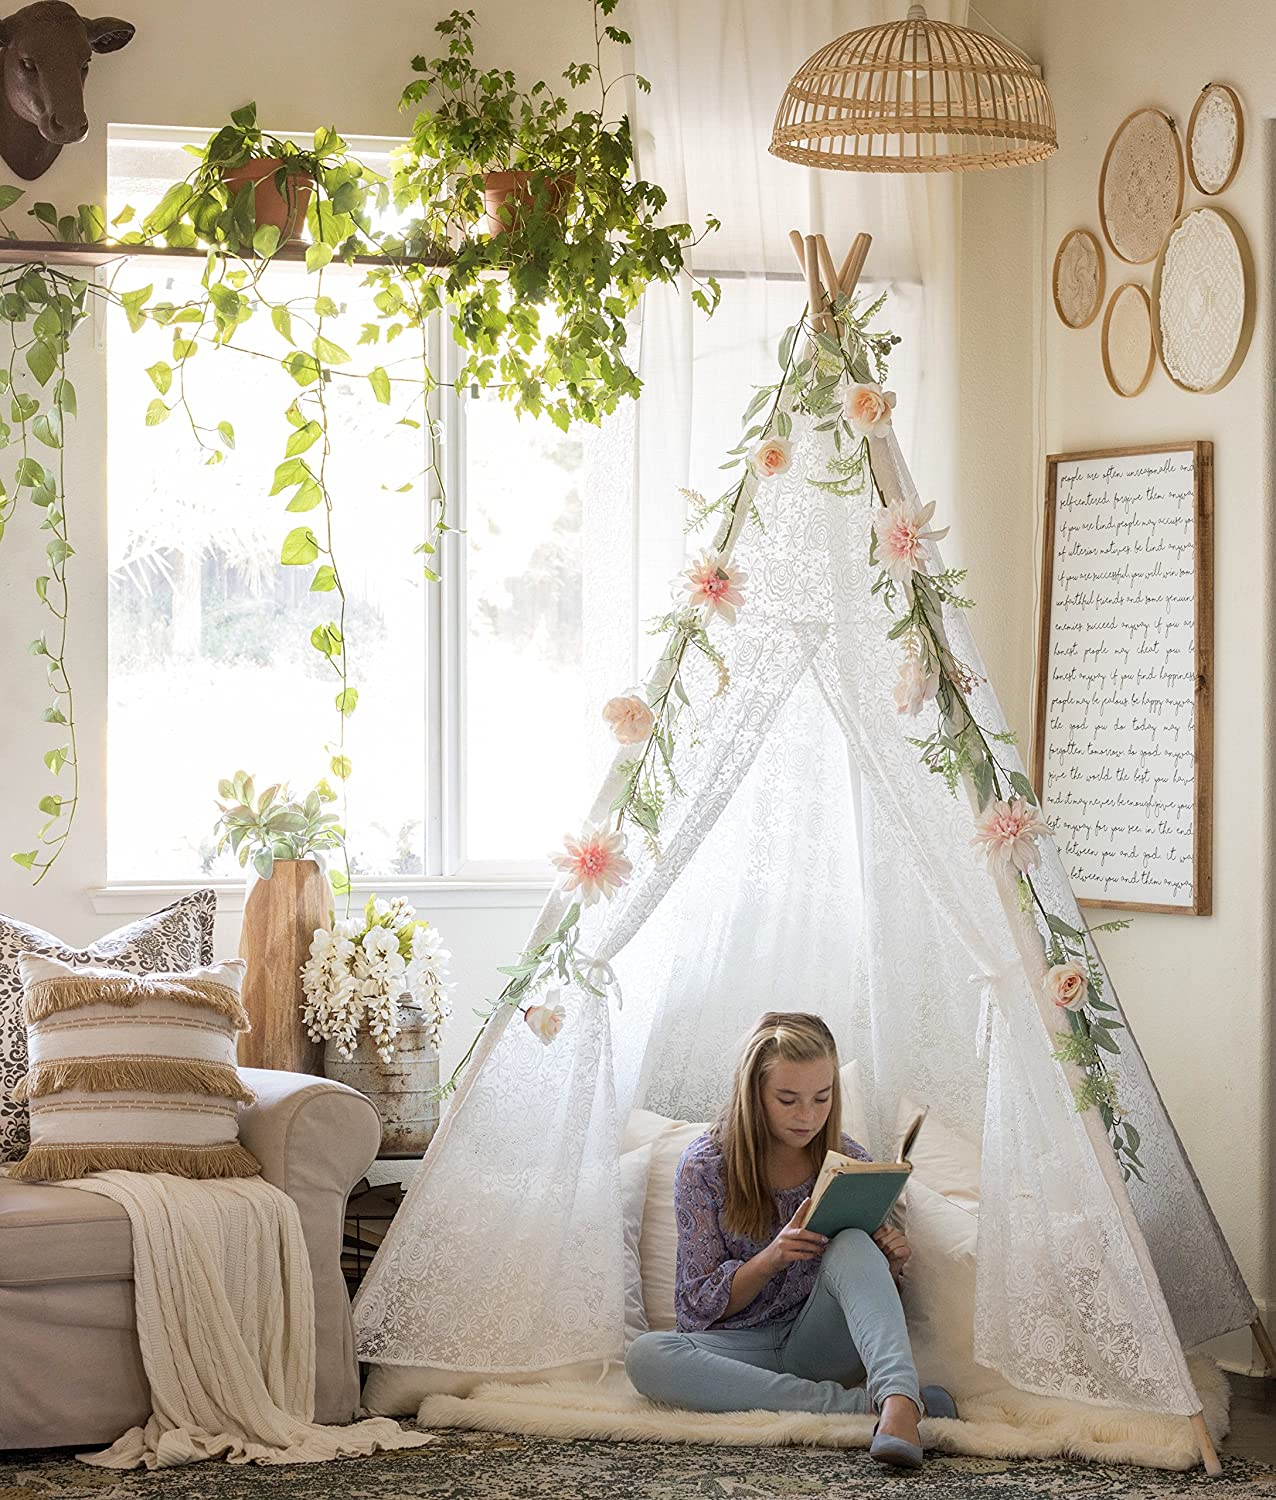 Top 15 Best Kids Teepee Tents (2020 Reviews & Buying Guide) 5